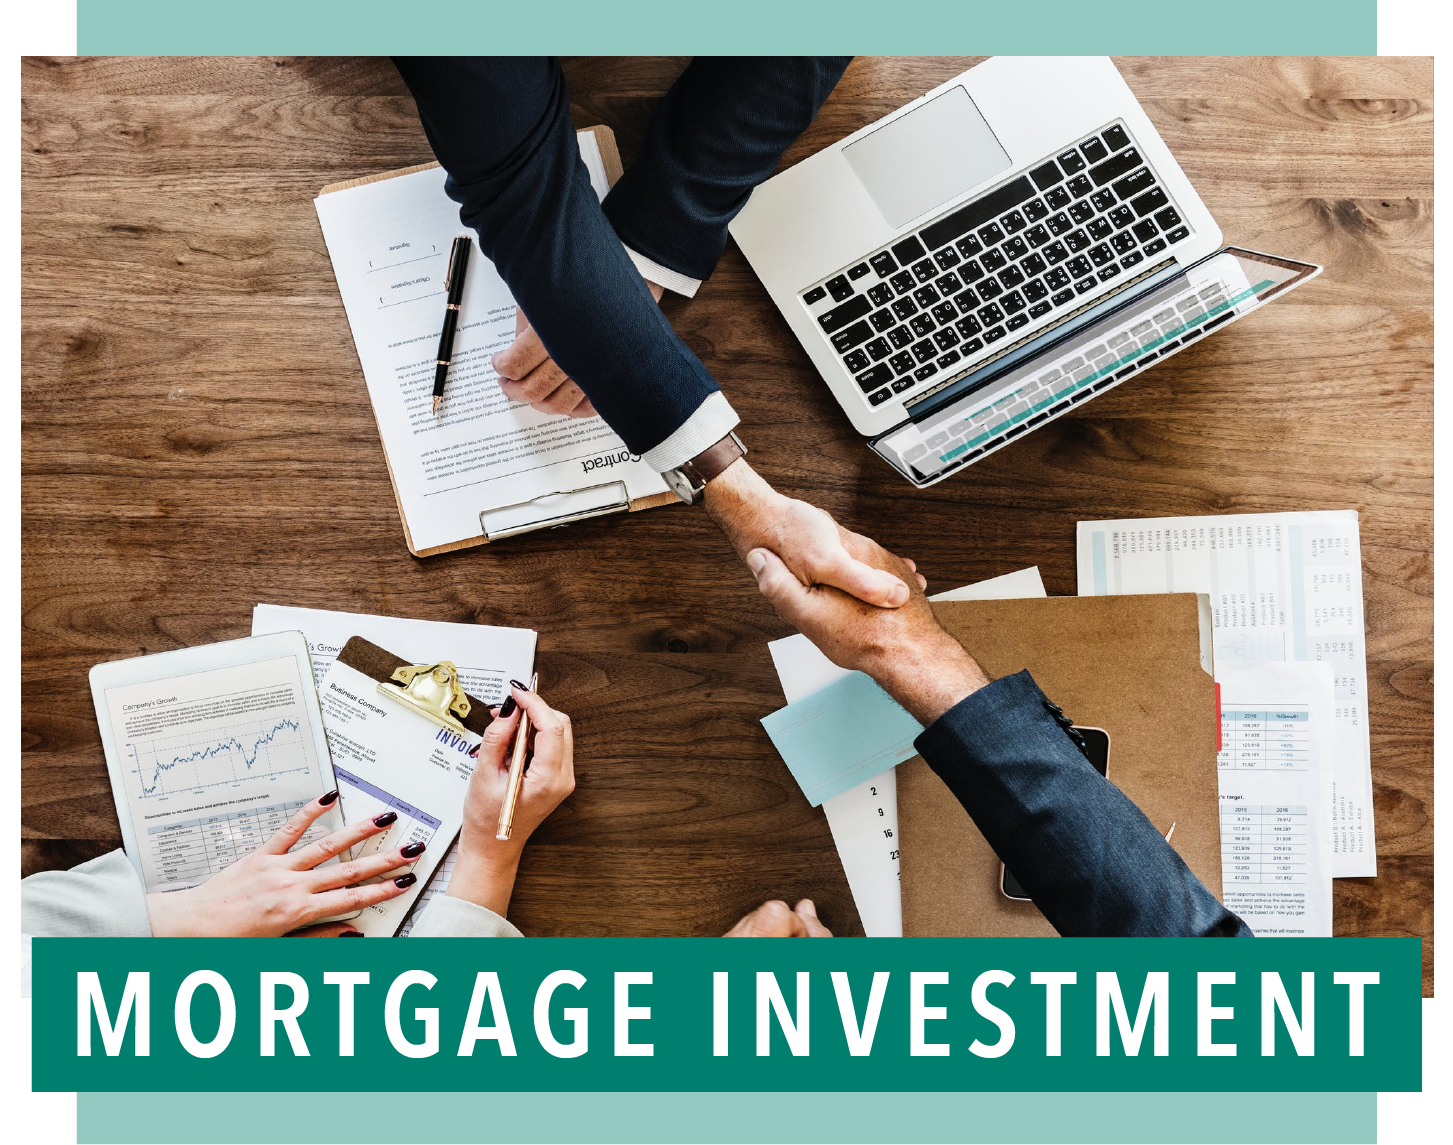 - When you invest in mortgages, you become the bank. In other words, instead of investing in the real estate, you invest in the loan or mortgage which is secured by the real estate. If you want relative safety and security, invest with a mortgage investment company. Invest with us—Brownstone.